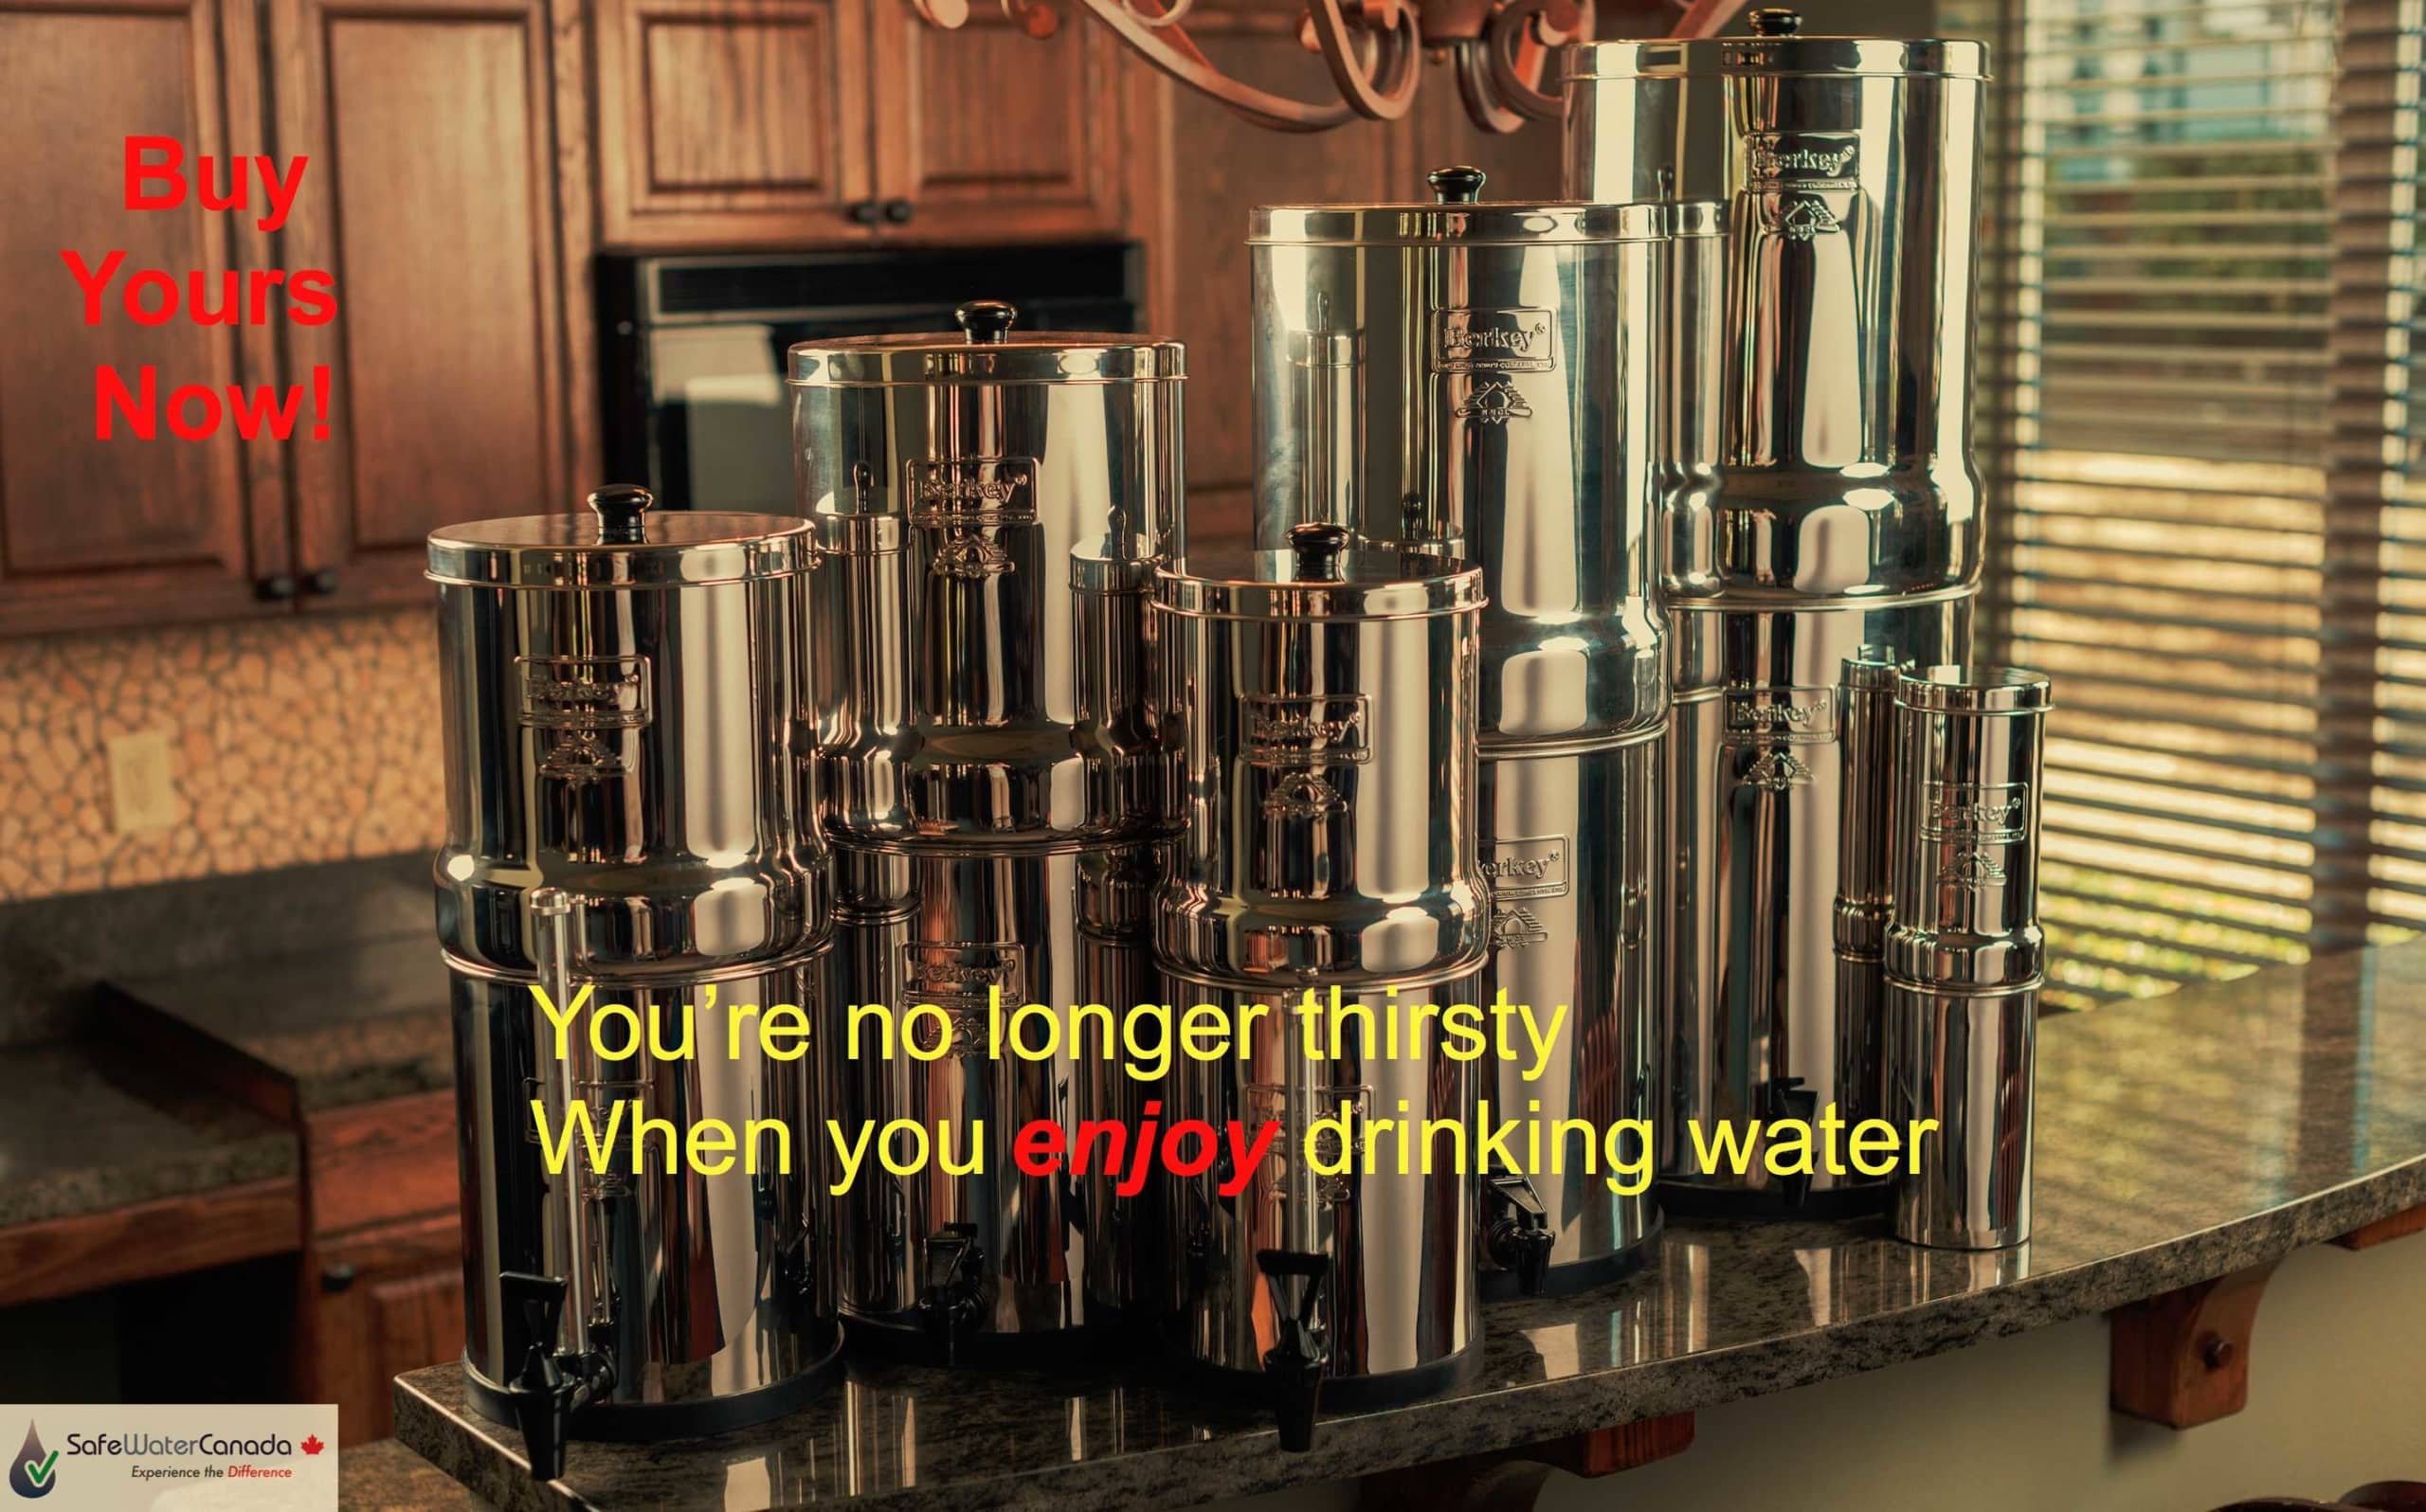 You're no longer thirsty when you enjoy drinking water